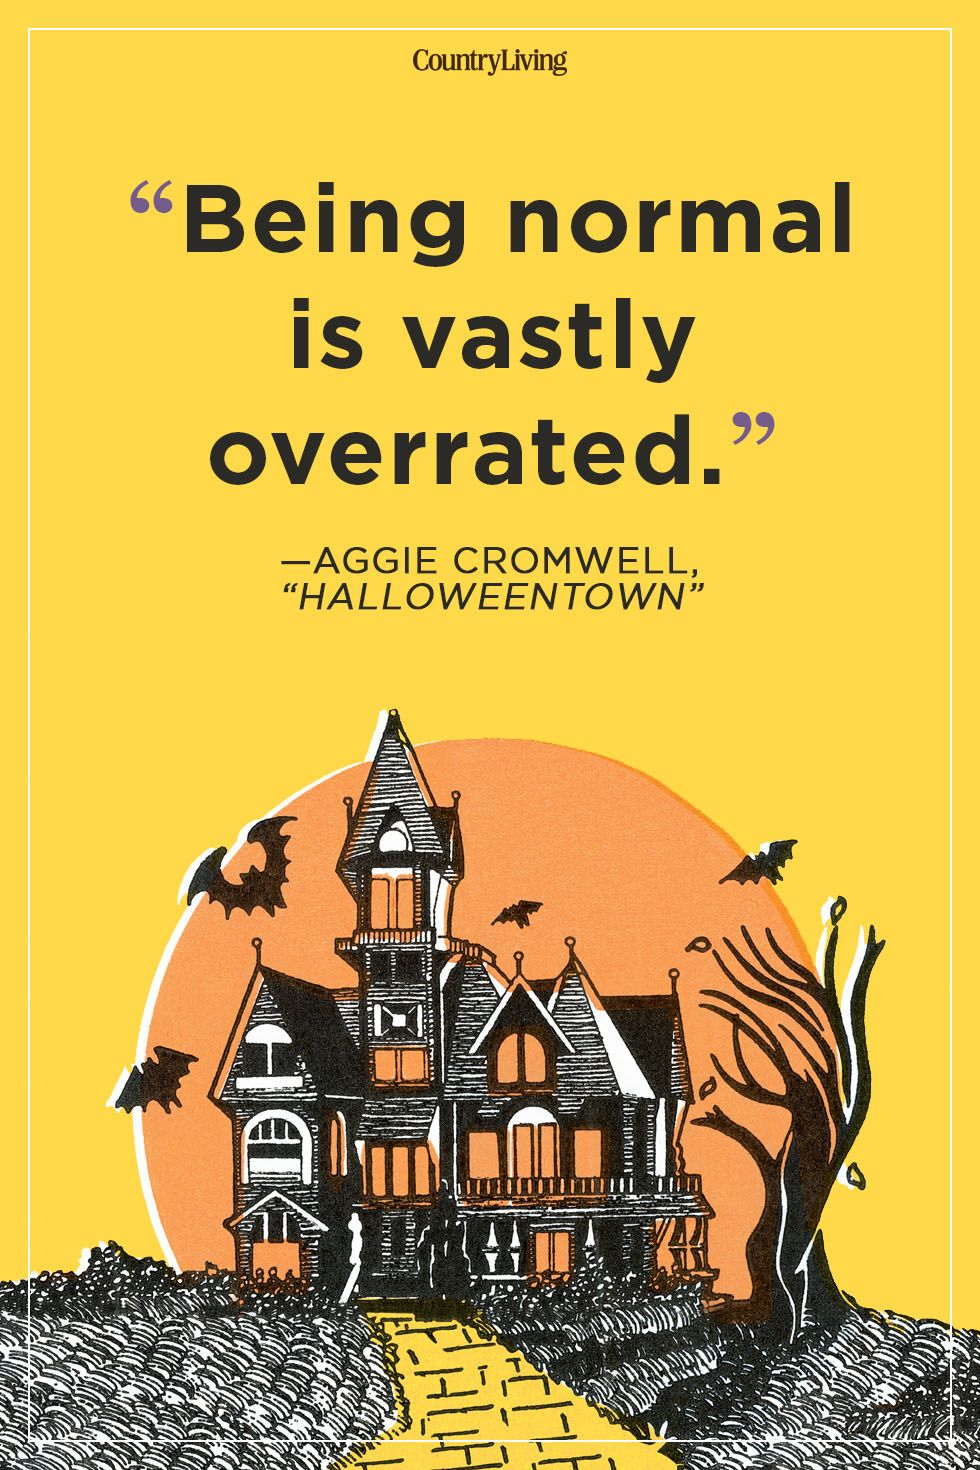 40 Happy Halloween Quotes Best Spooky Halloween Quotes And Sayings